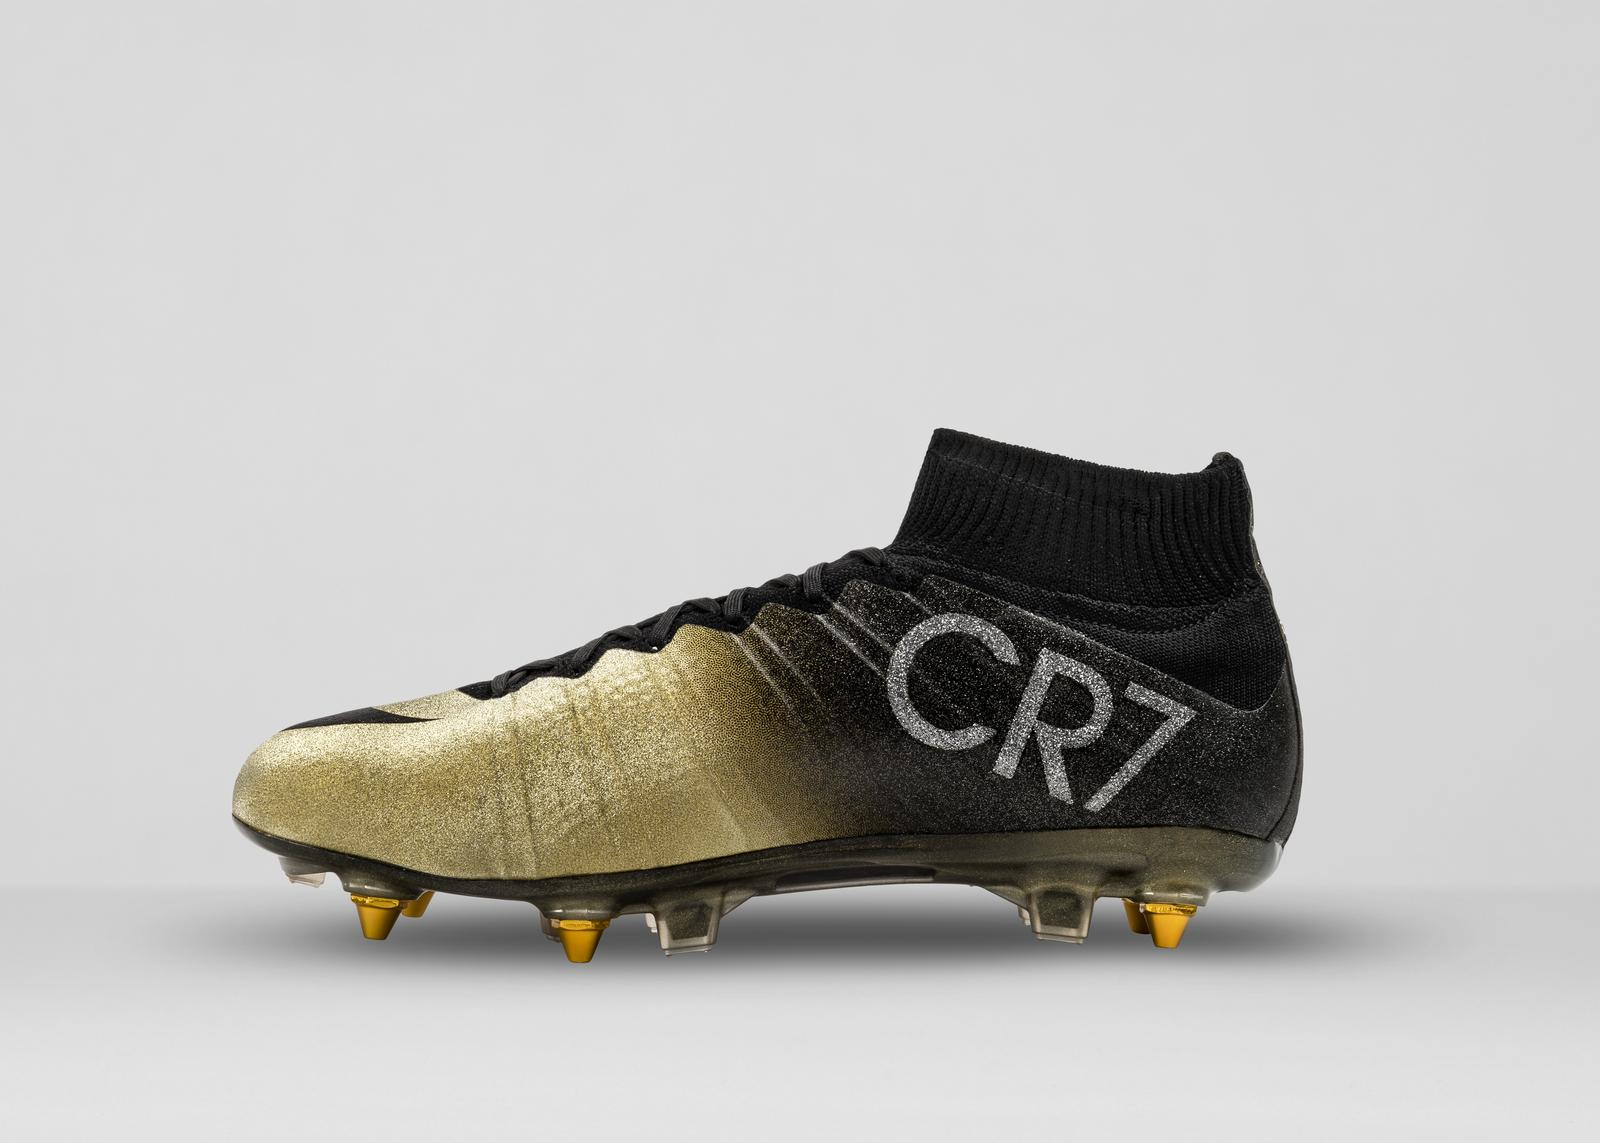 Nike News - Nike Congratulates Cristiano Ronaldo with Mercurial CR7